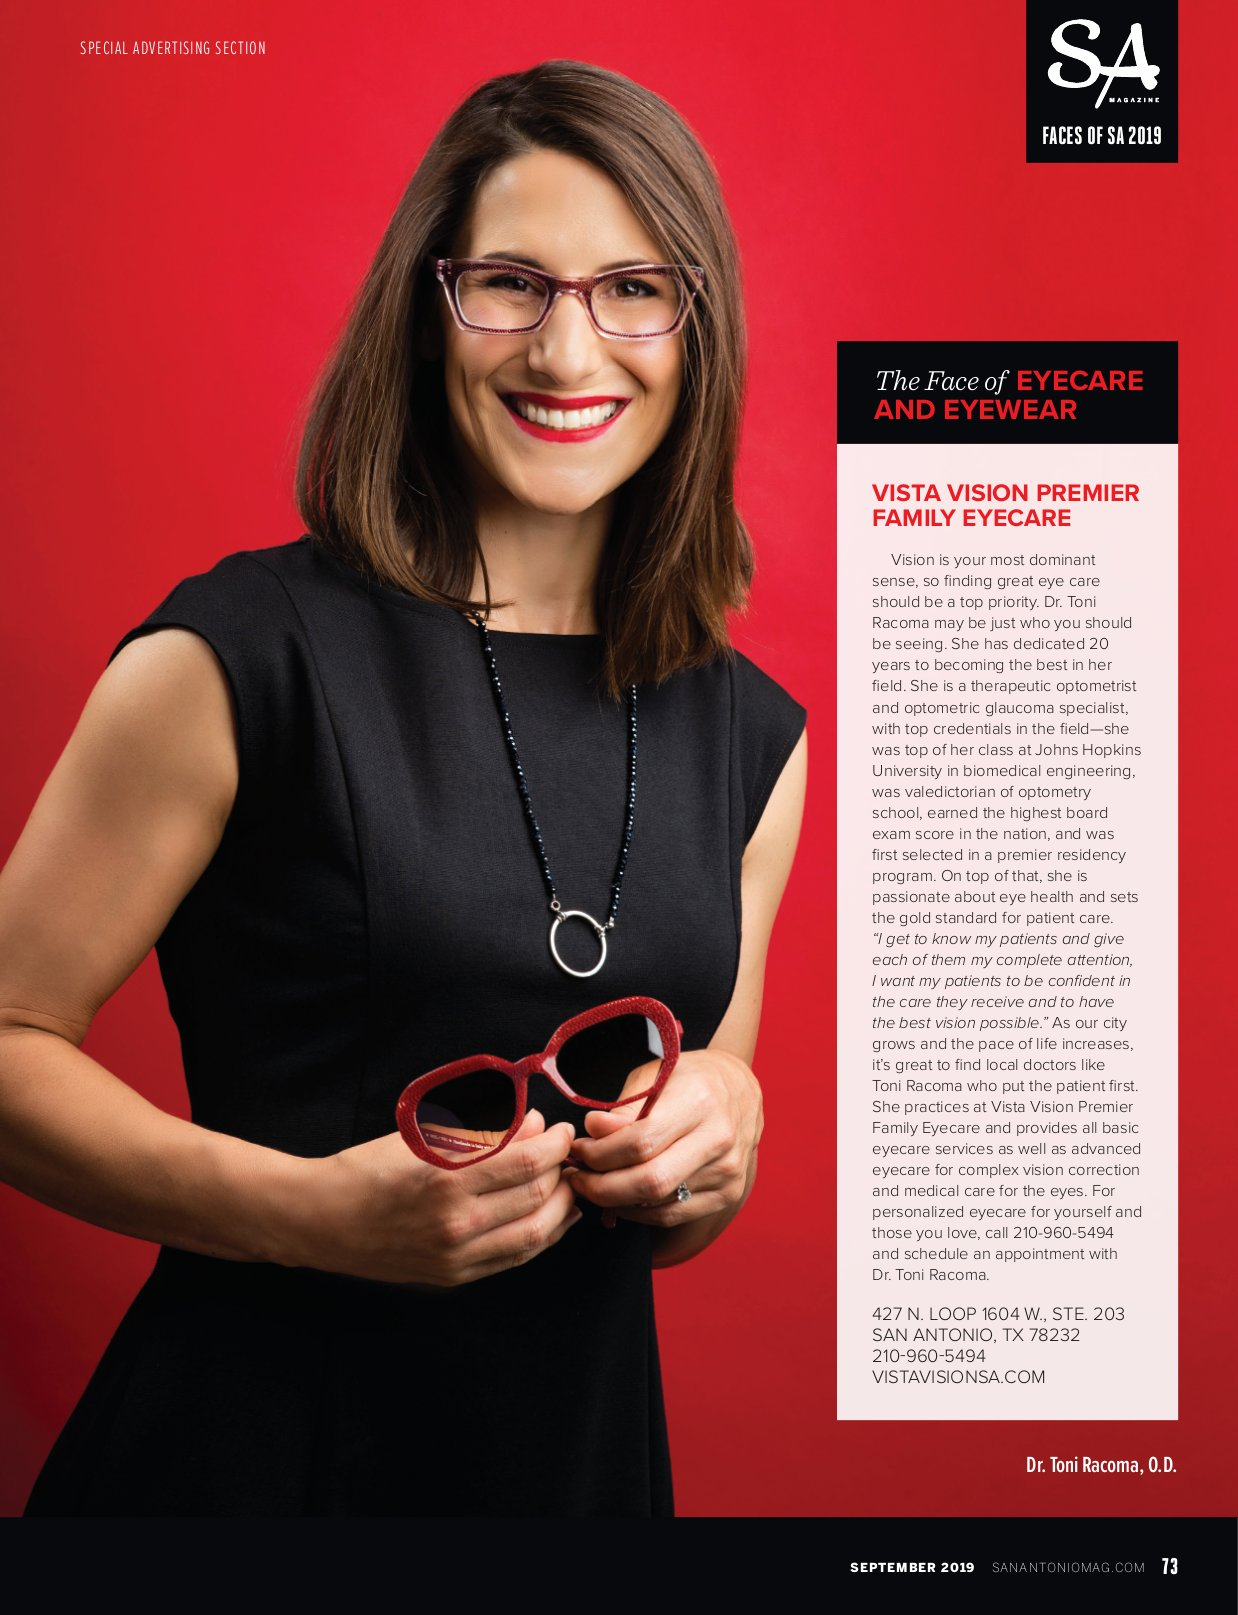 Face of Eyecare and Eyewear Artical.jpeg